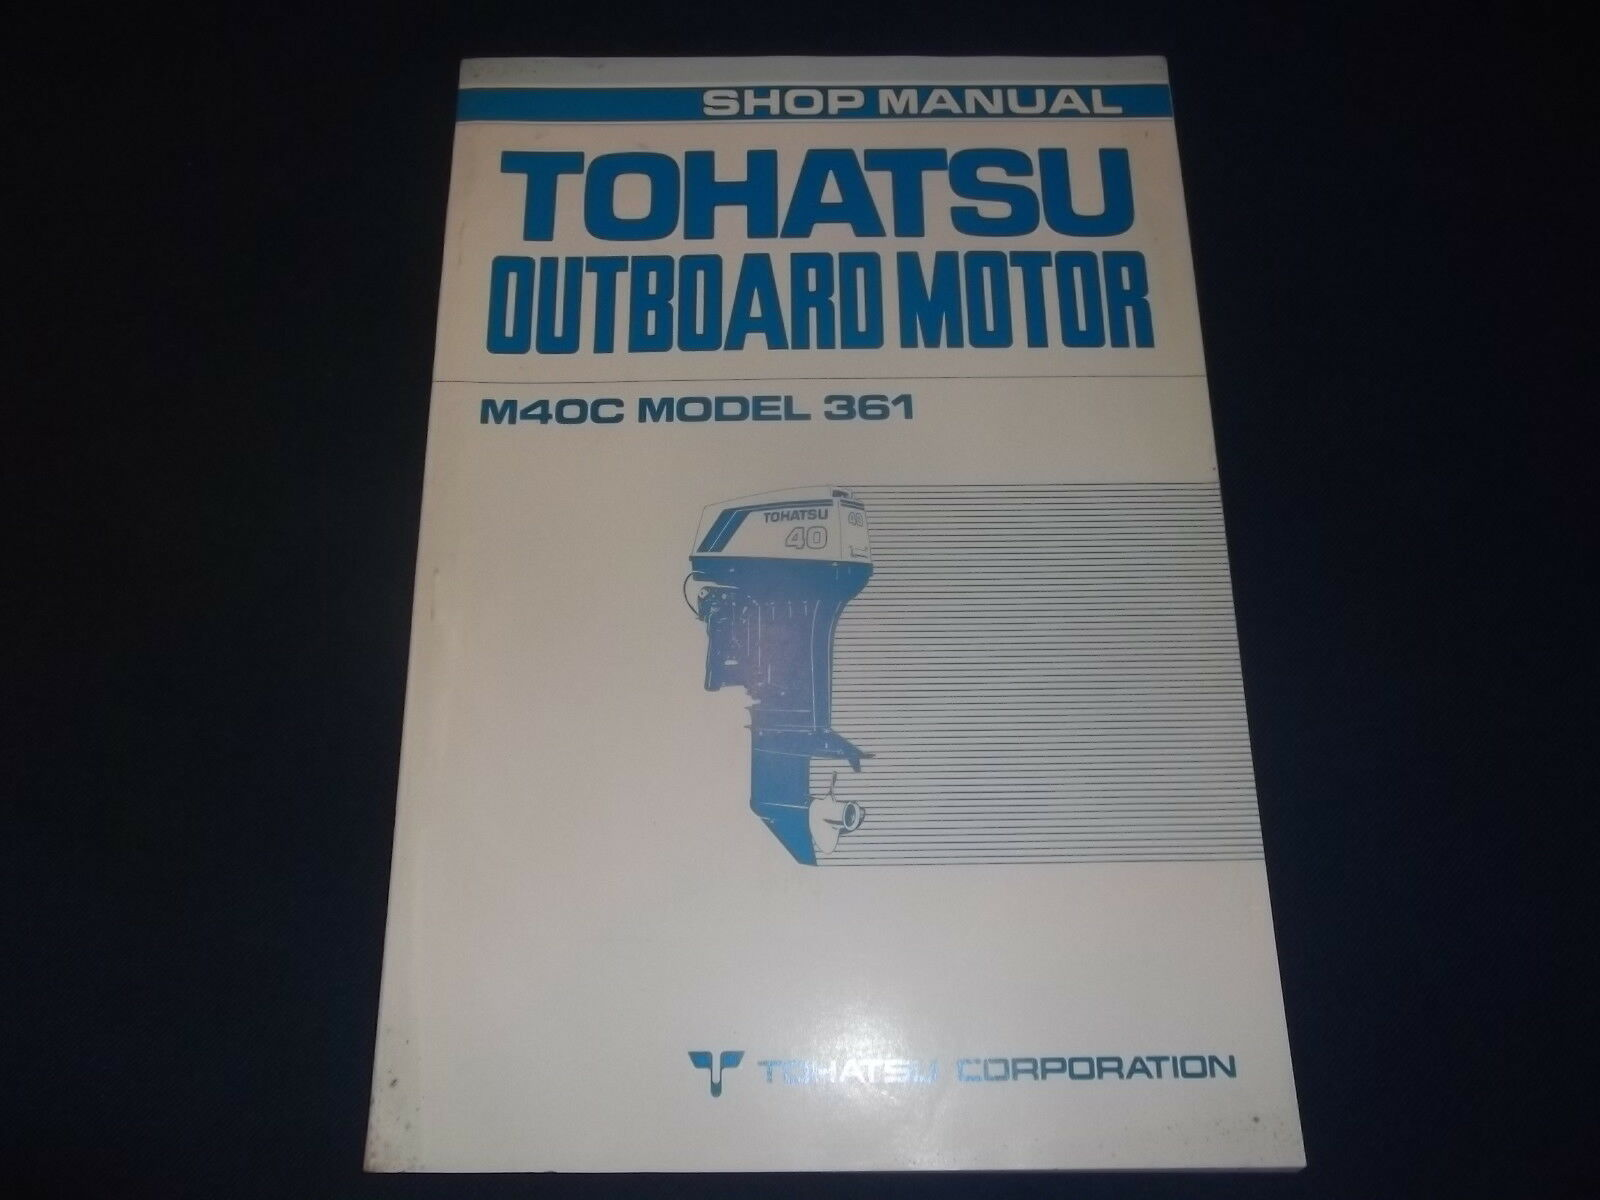 Tohatsu Nissan M40C 361 Outboard Motor Engine Service Shop Repair Manual  Book 1 of 3FREE Shipping See More